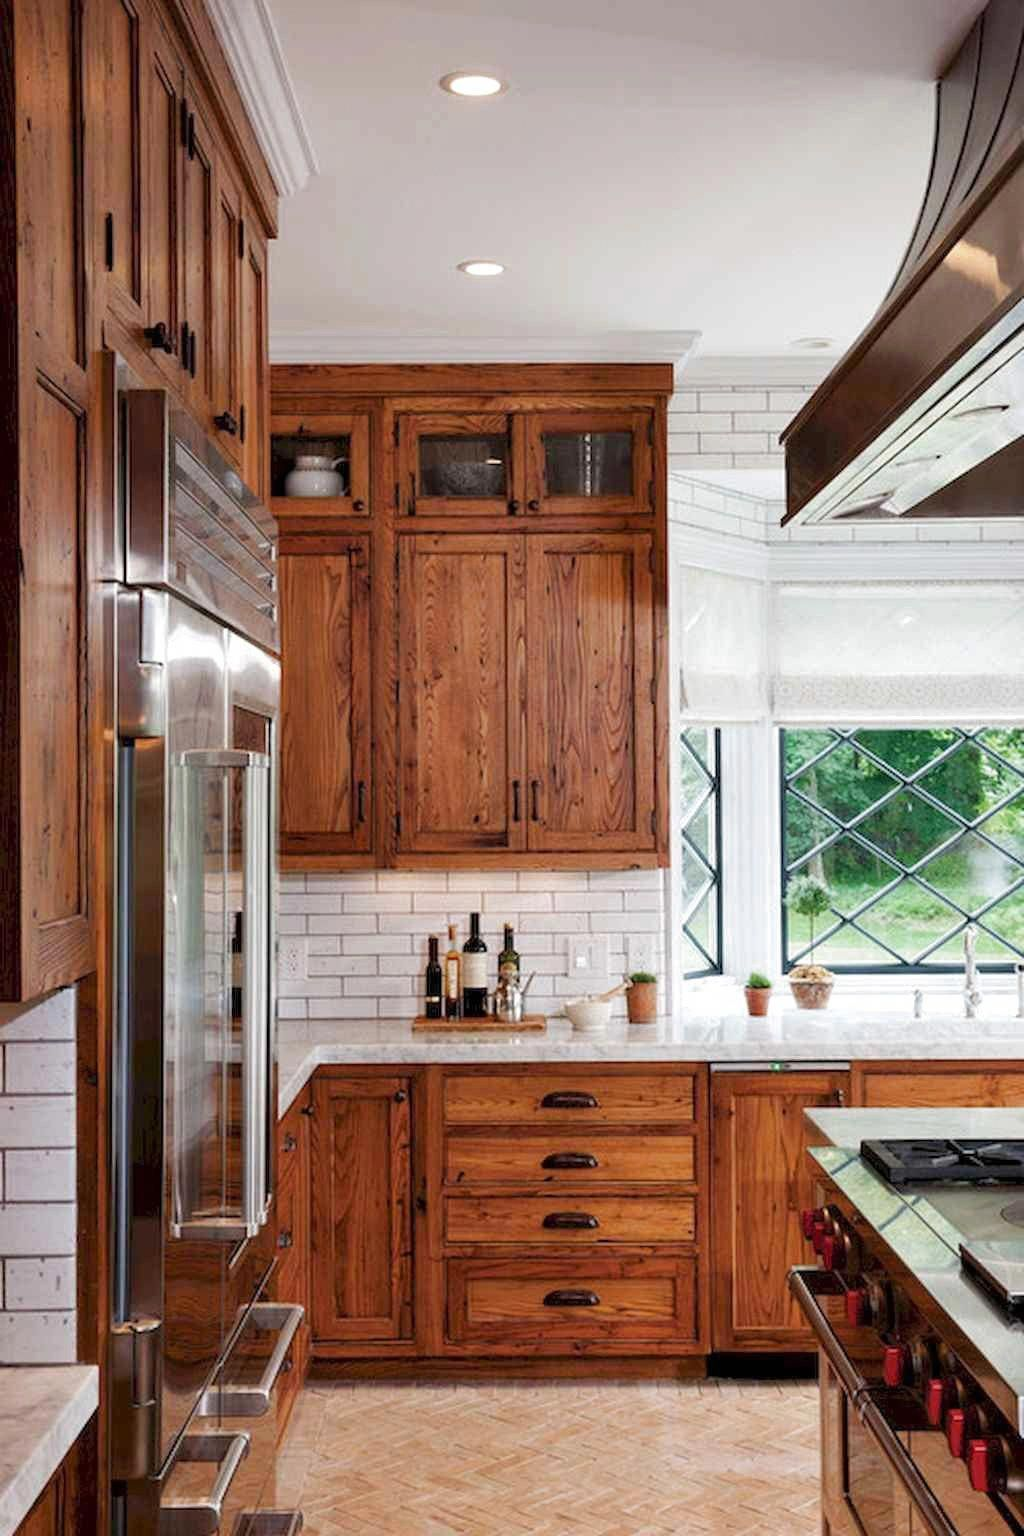 Laminate counter tops are typically thought about the most